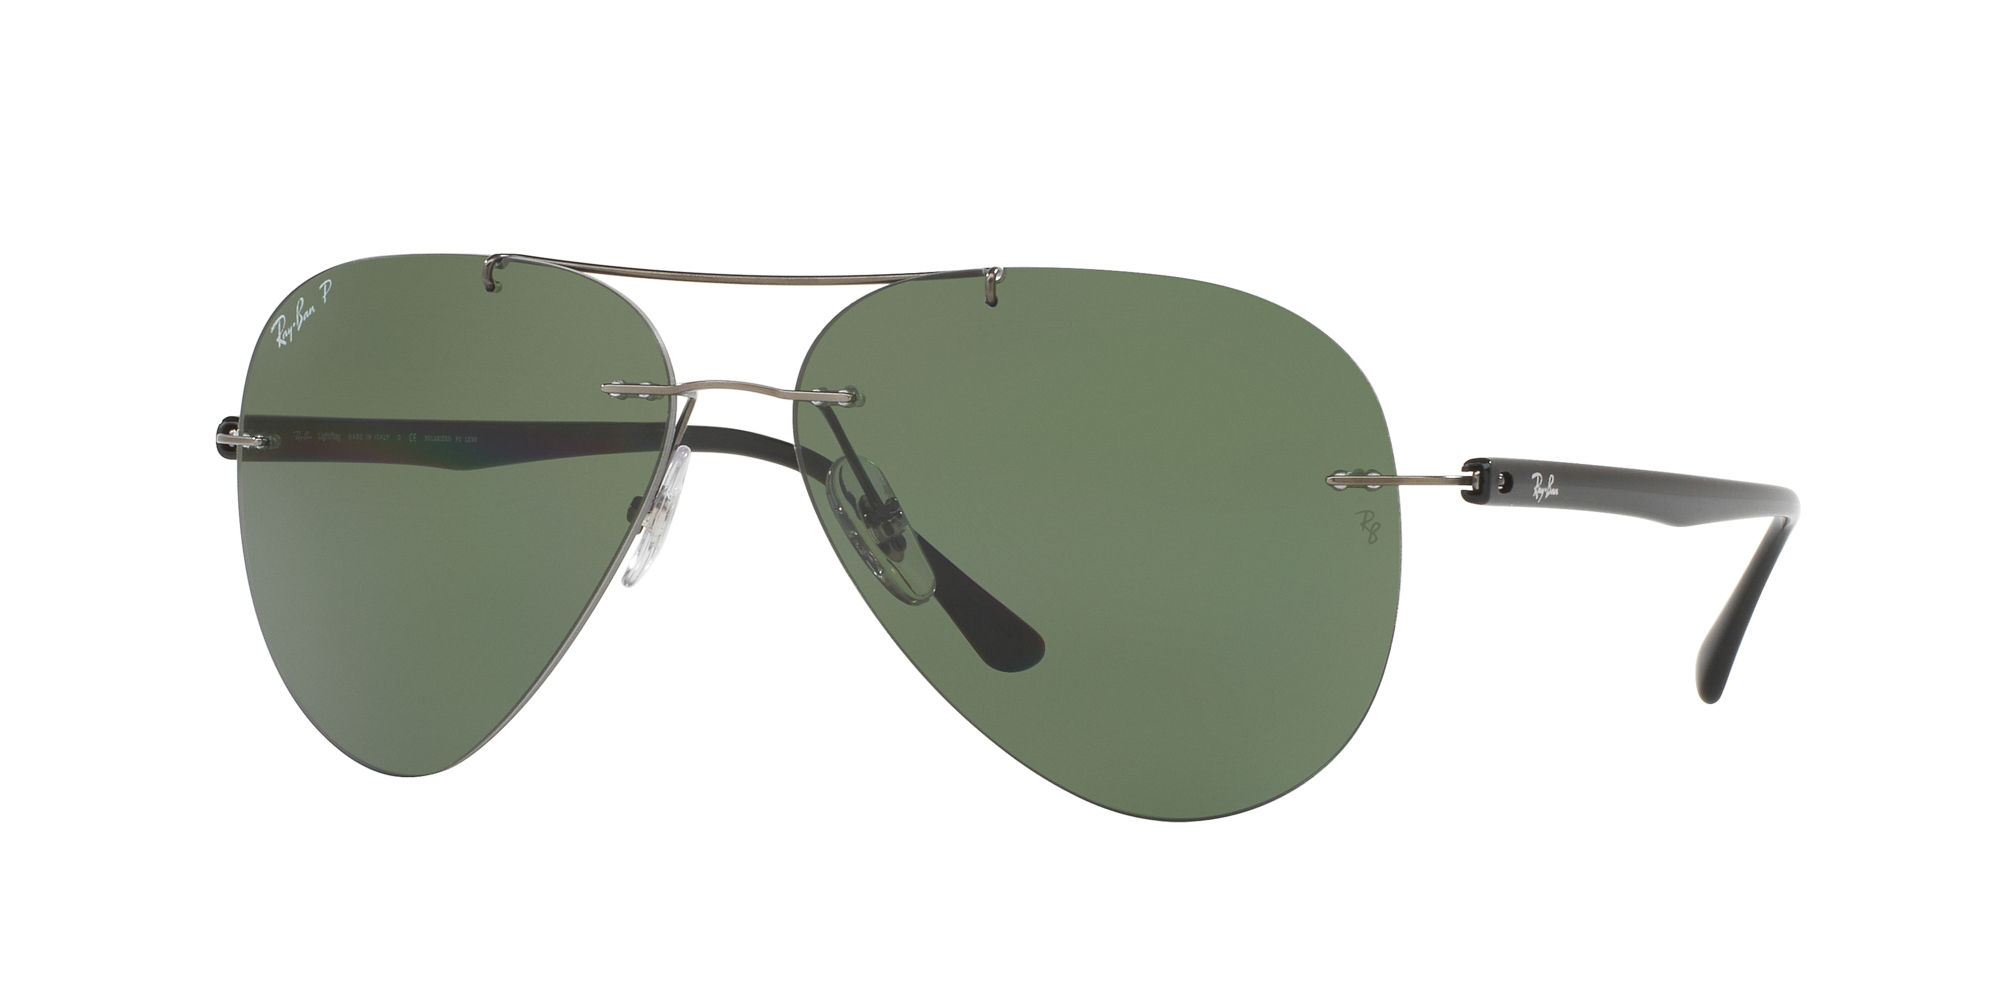 Ray-Ban Brown Polarized Aviator Sunglasses - RB3025 001/57 59 - 13